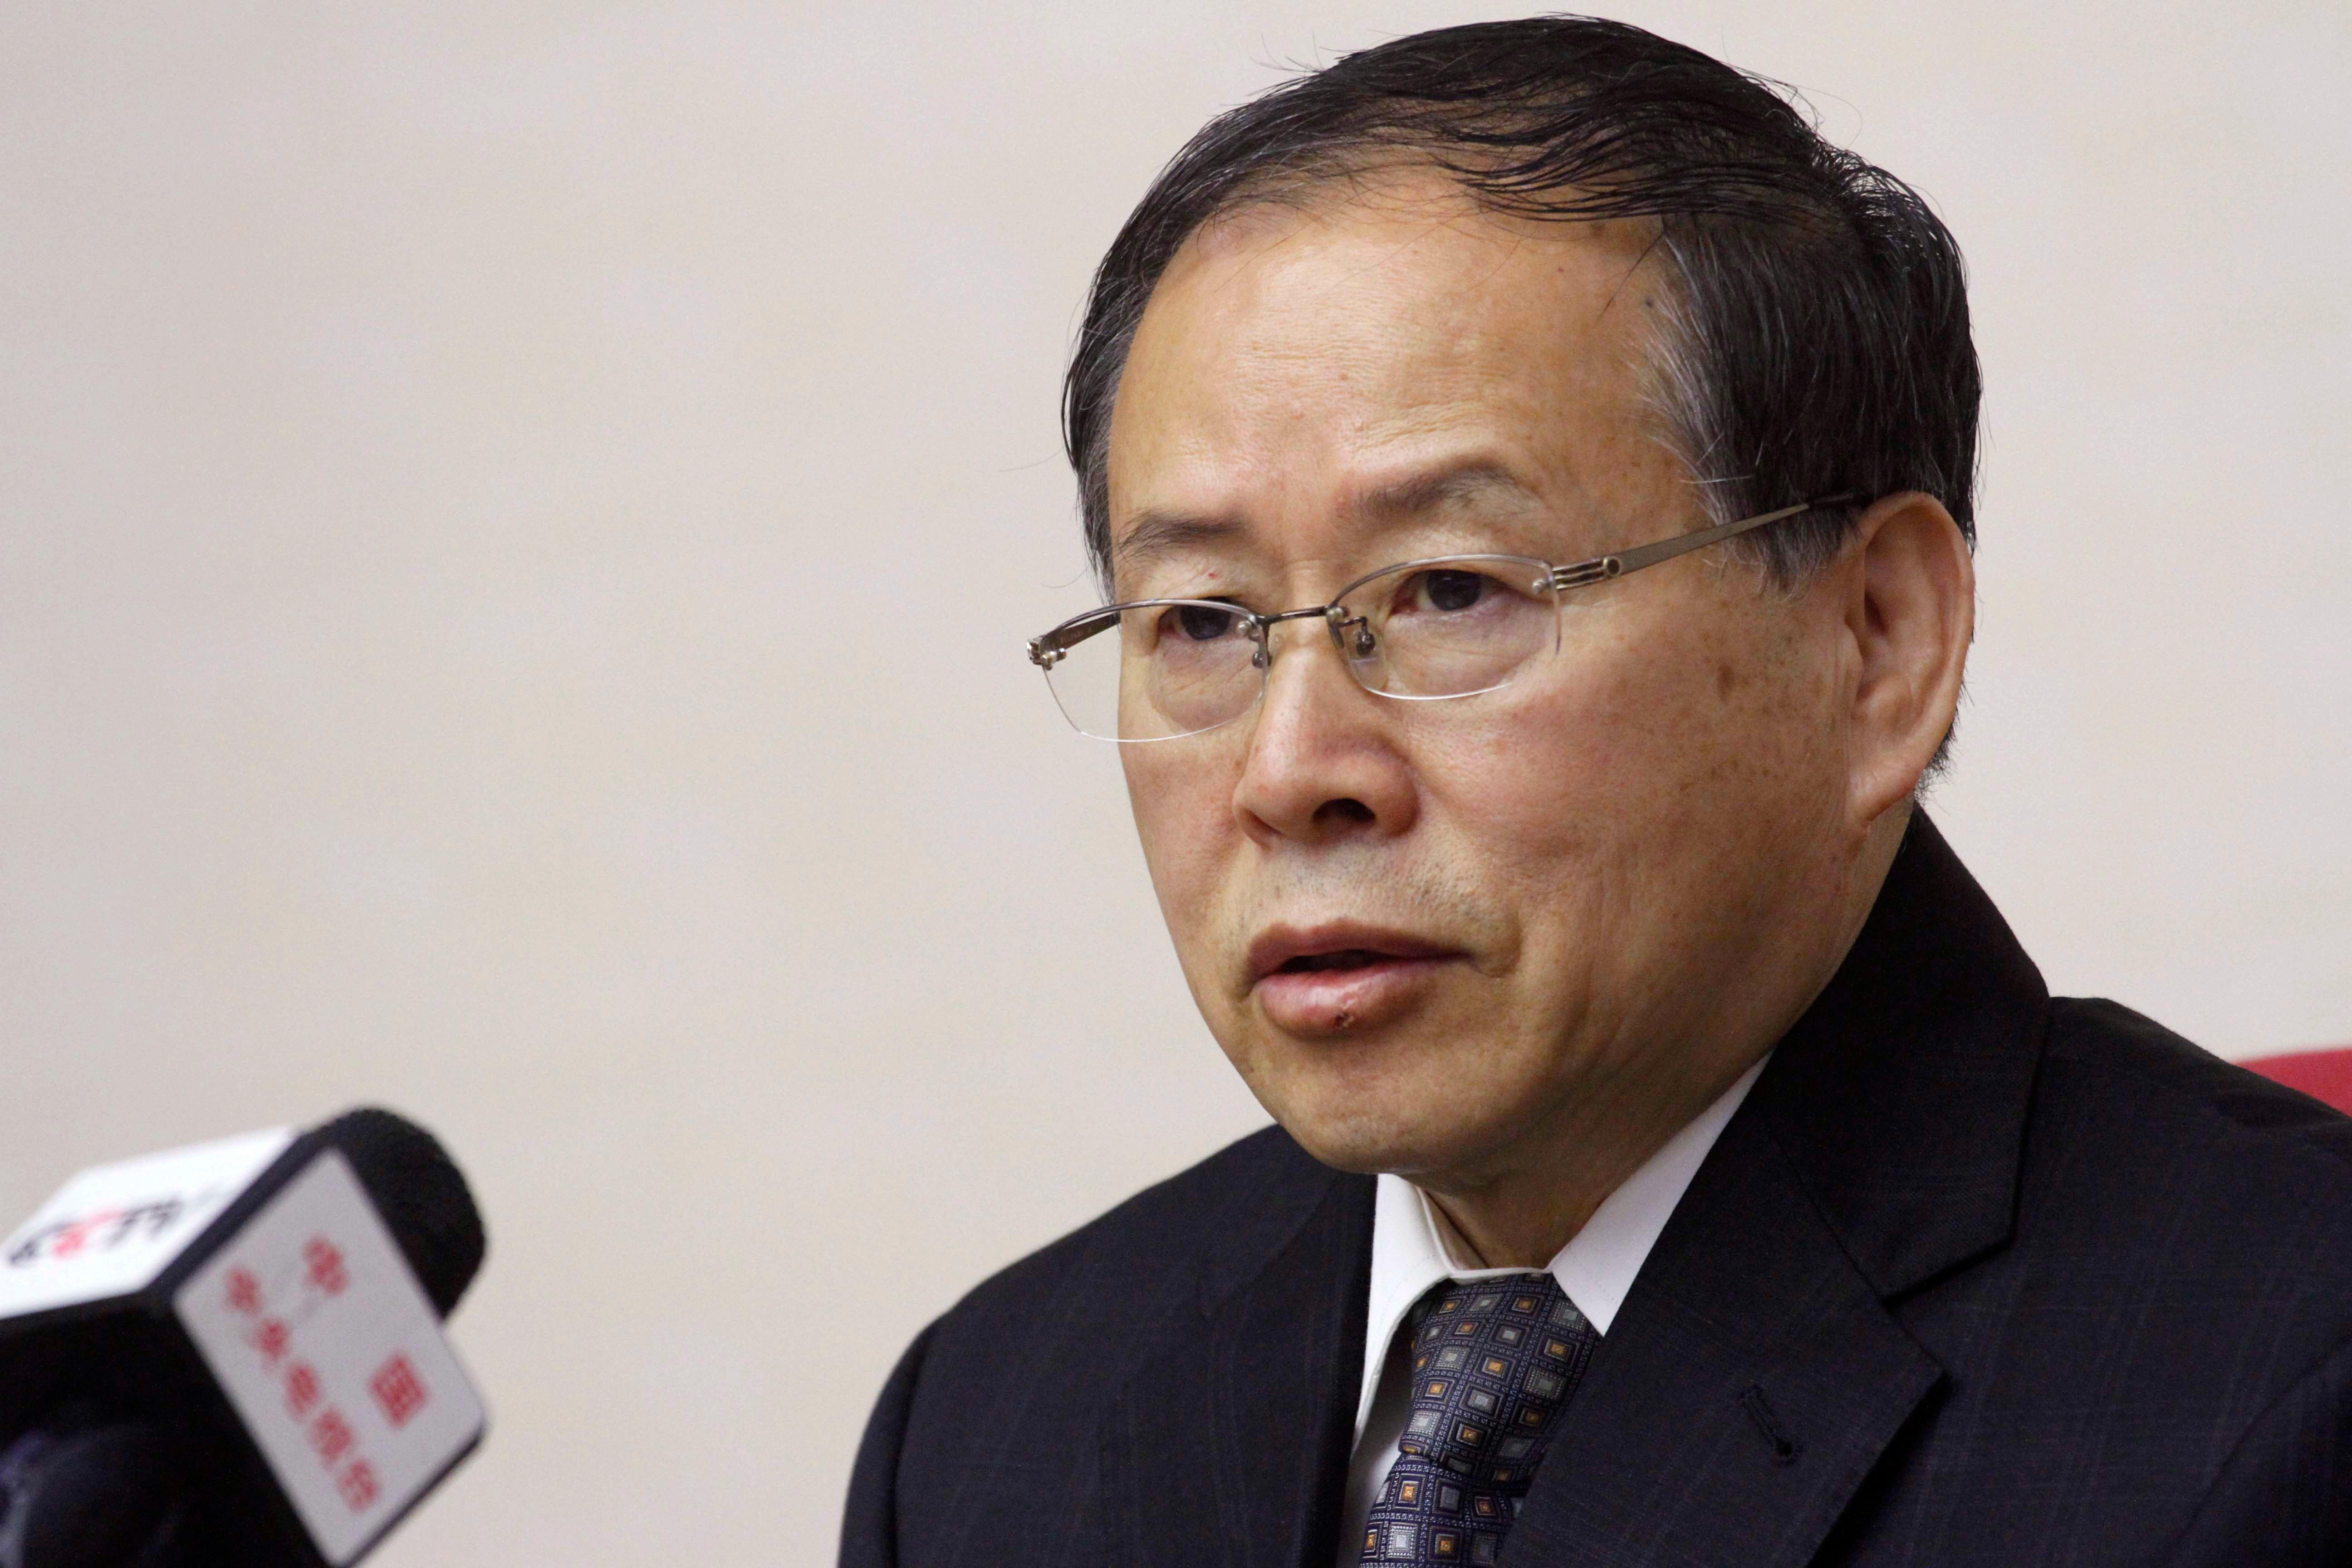 North Korea's Vice Foreign Minister Han Song Ryol speaks during a meeting at the People's Palace of Culture in Pyongyang, Thursday, May 11, 2017.  Pyongyang will seek the extradition of anyone involved in what it says was a CIA-backed plot to kill leader Kim Jung Un last month with a biochemical poison, Han, a top North Korean foreign ministry official said Thursday.(AP Photo/Jon Chol Jin)